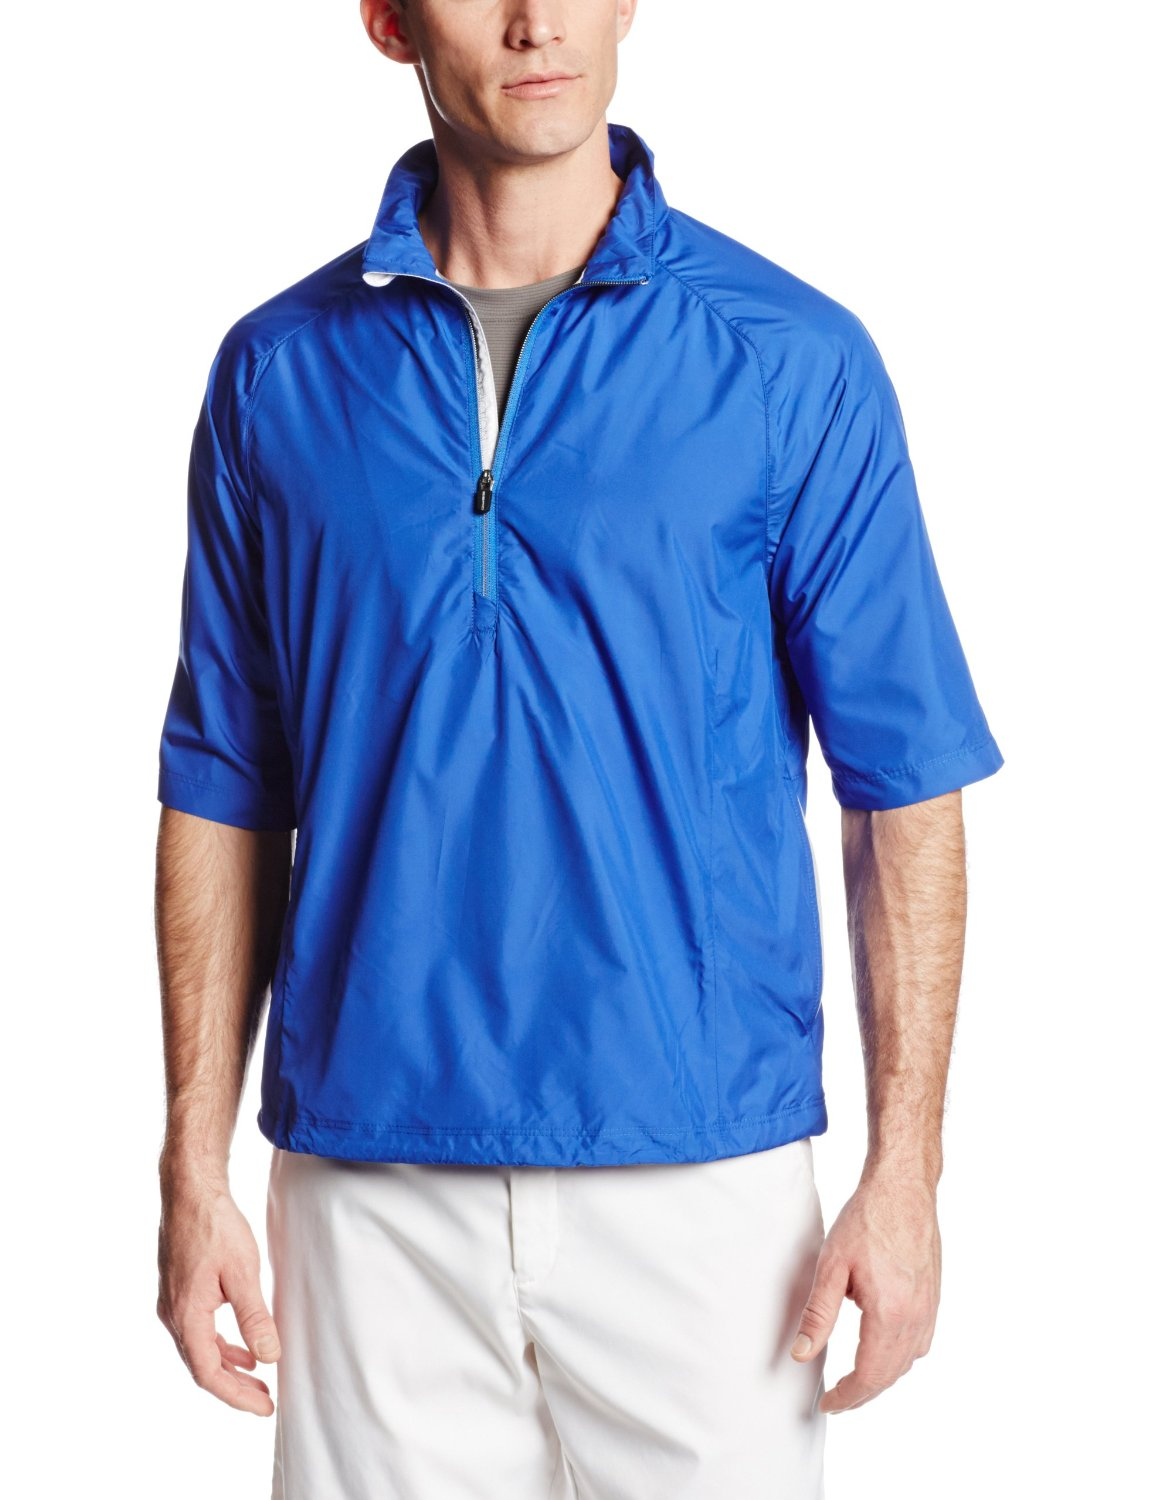 Mens Zero Restriction Cloud Quarter Zip Golf Jackets